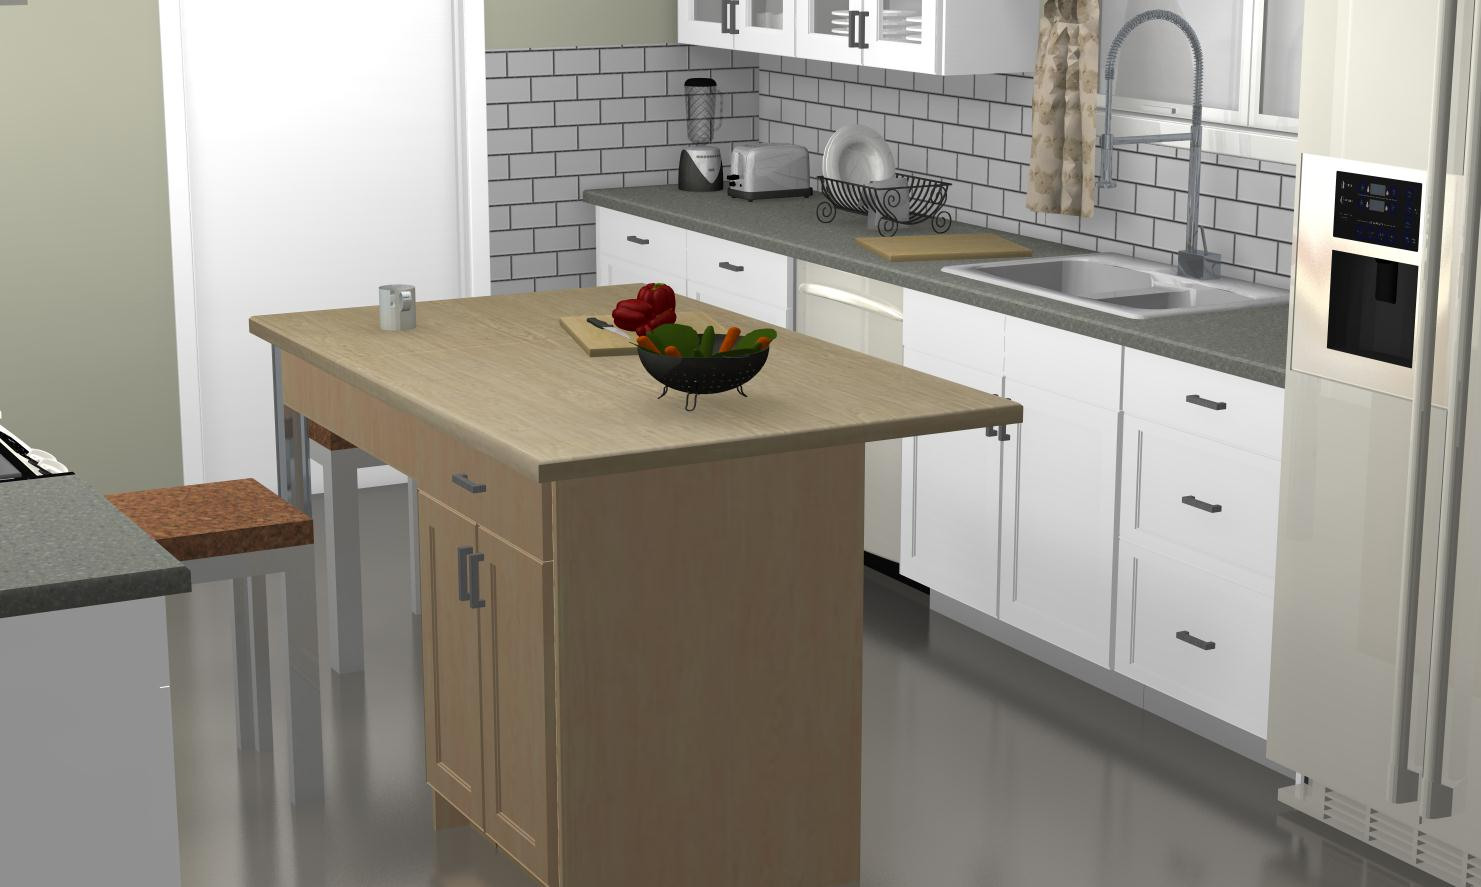 Ikdo The Ikea Kitchen Design Online Blog